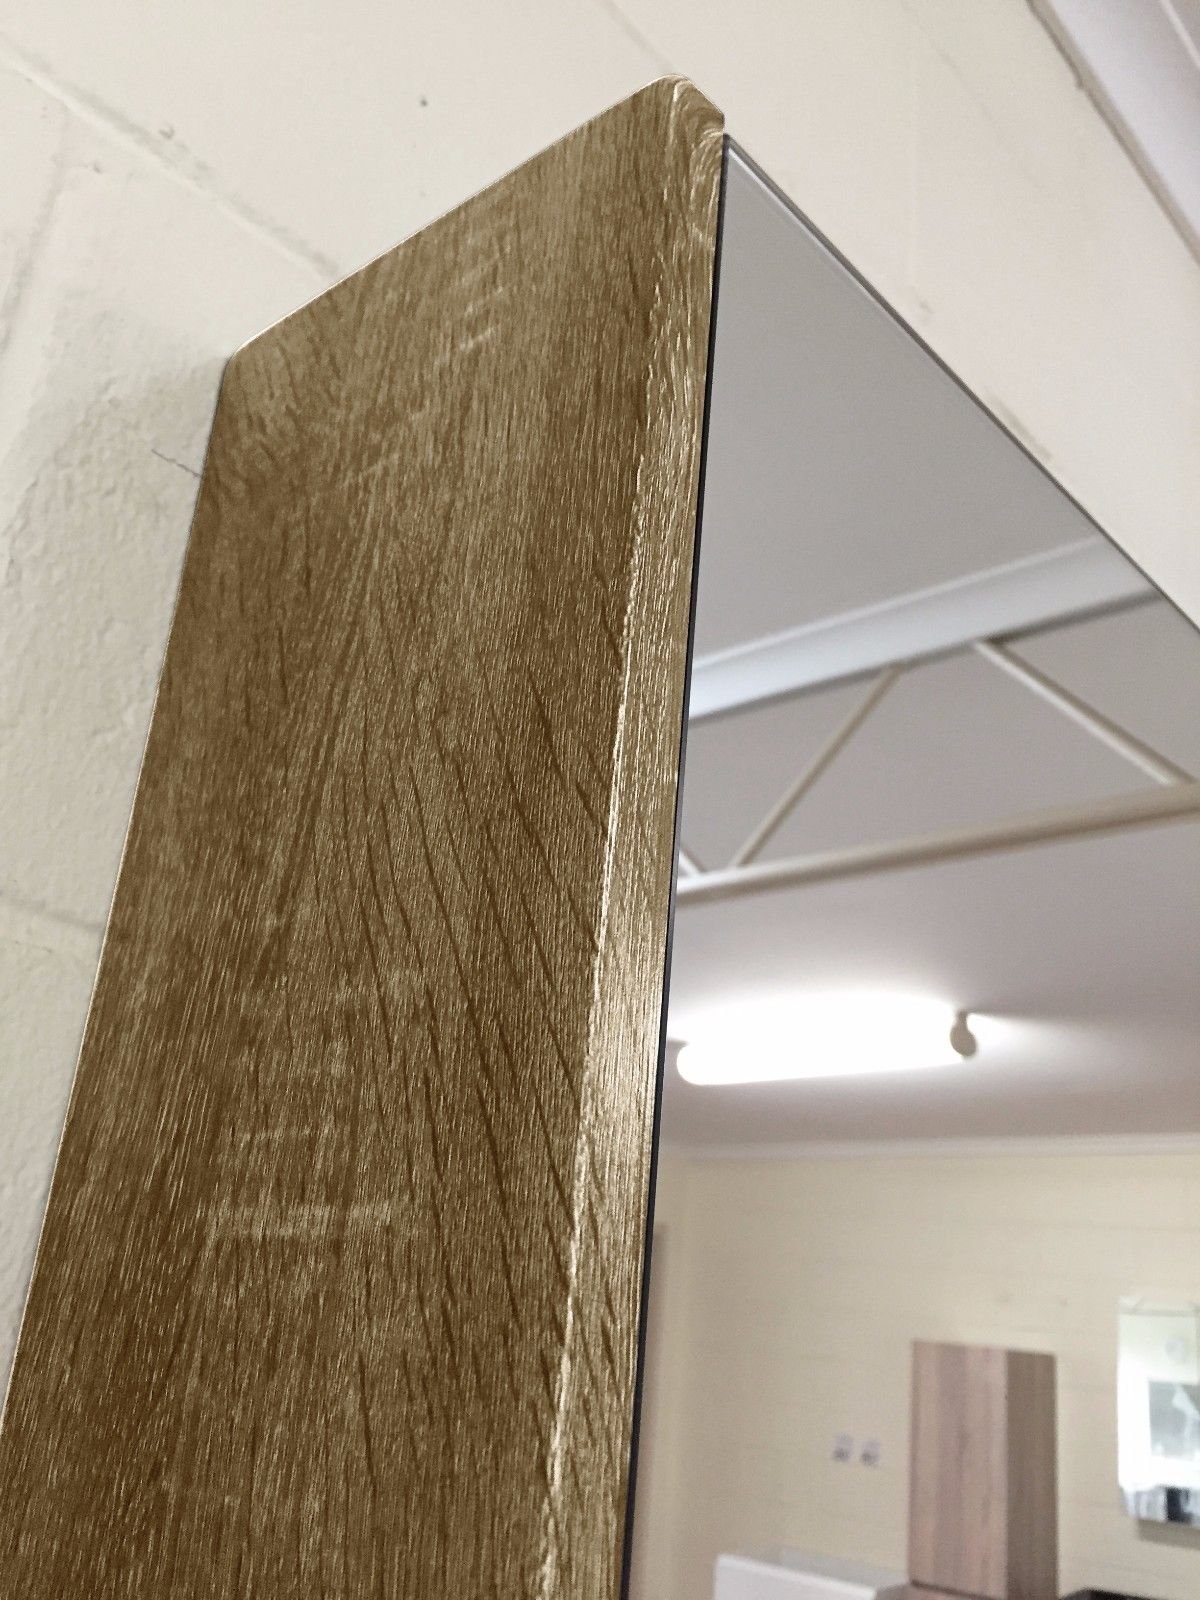 Shower Shaving Mirror Australia Shave Mirror Shaving Cabinet With Timber Wood Grain Side